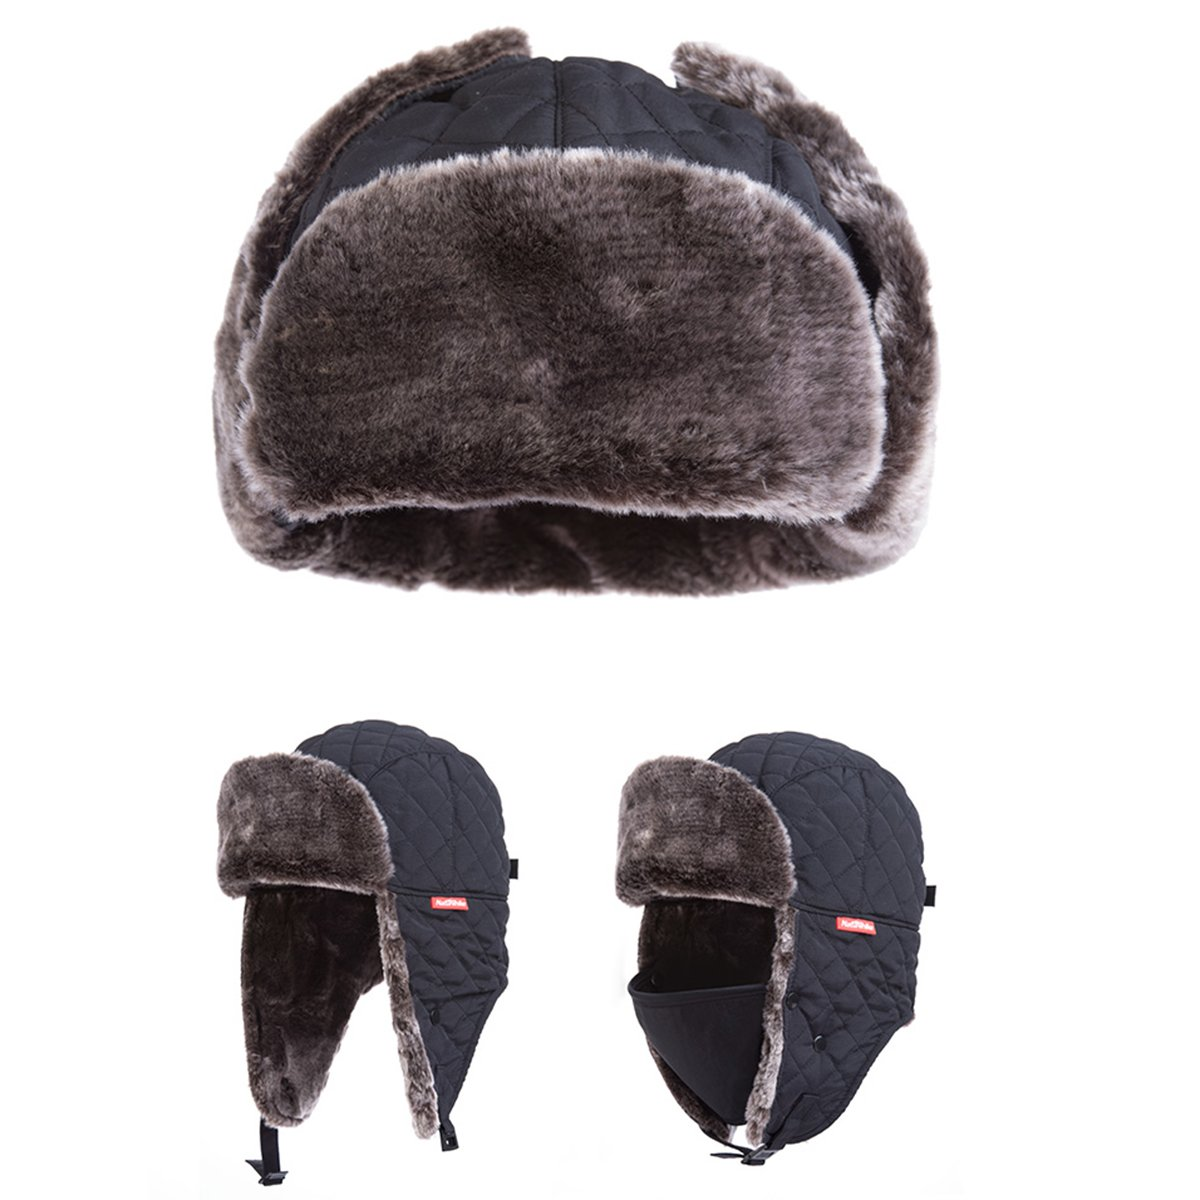 Azarxis Unisex Winter Trapper Hat Hunting Hat Ushanka Ear Flap Chin Strap with Windproof Mask (Black) by Azarxis (Image #2)